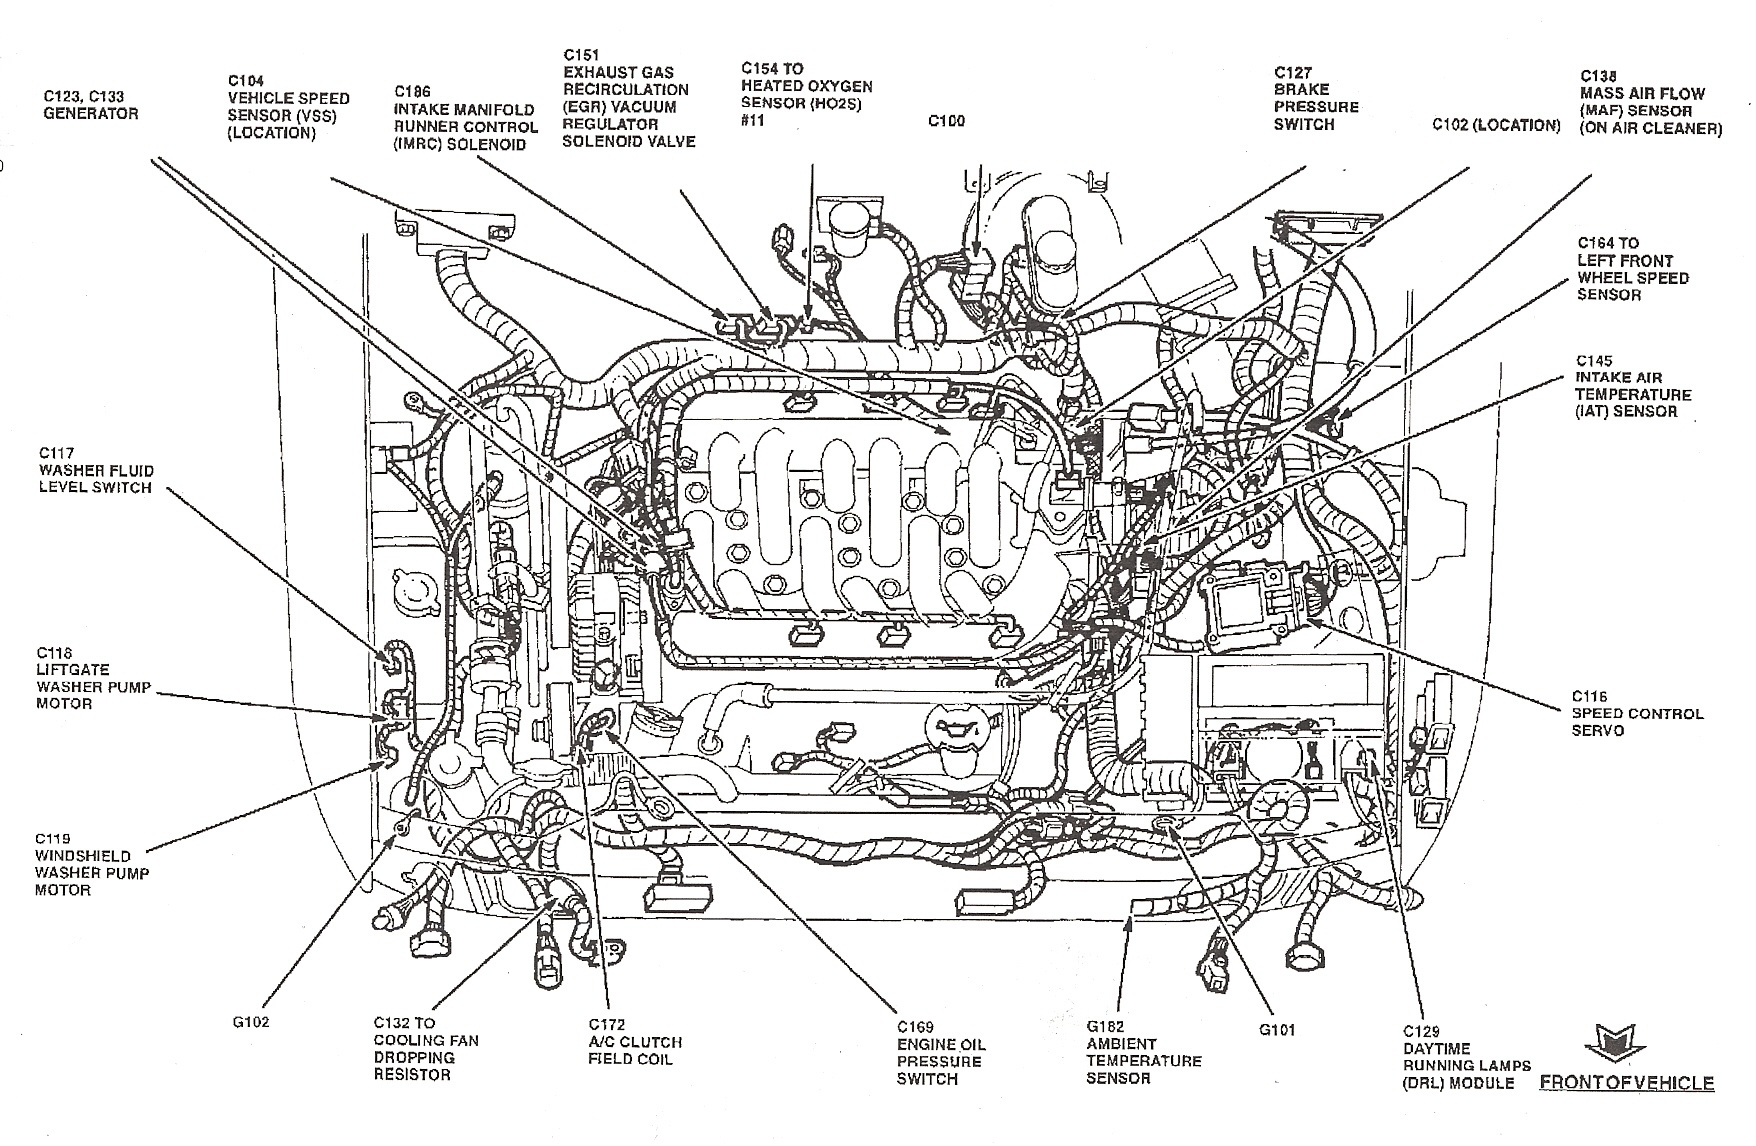 05 Ford Escape 3 0 Engine Diagram Wiring Diagram Complete Complete Lionsclubviterbo It